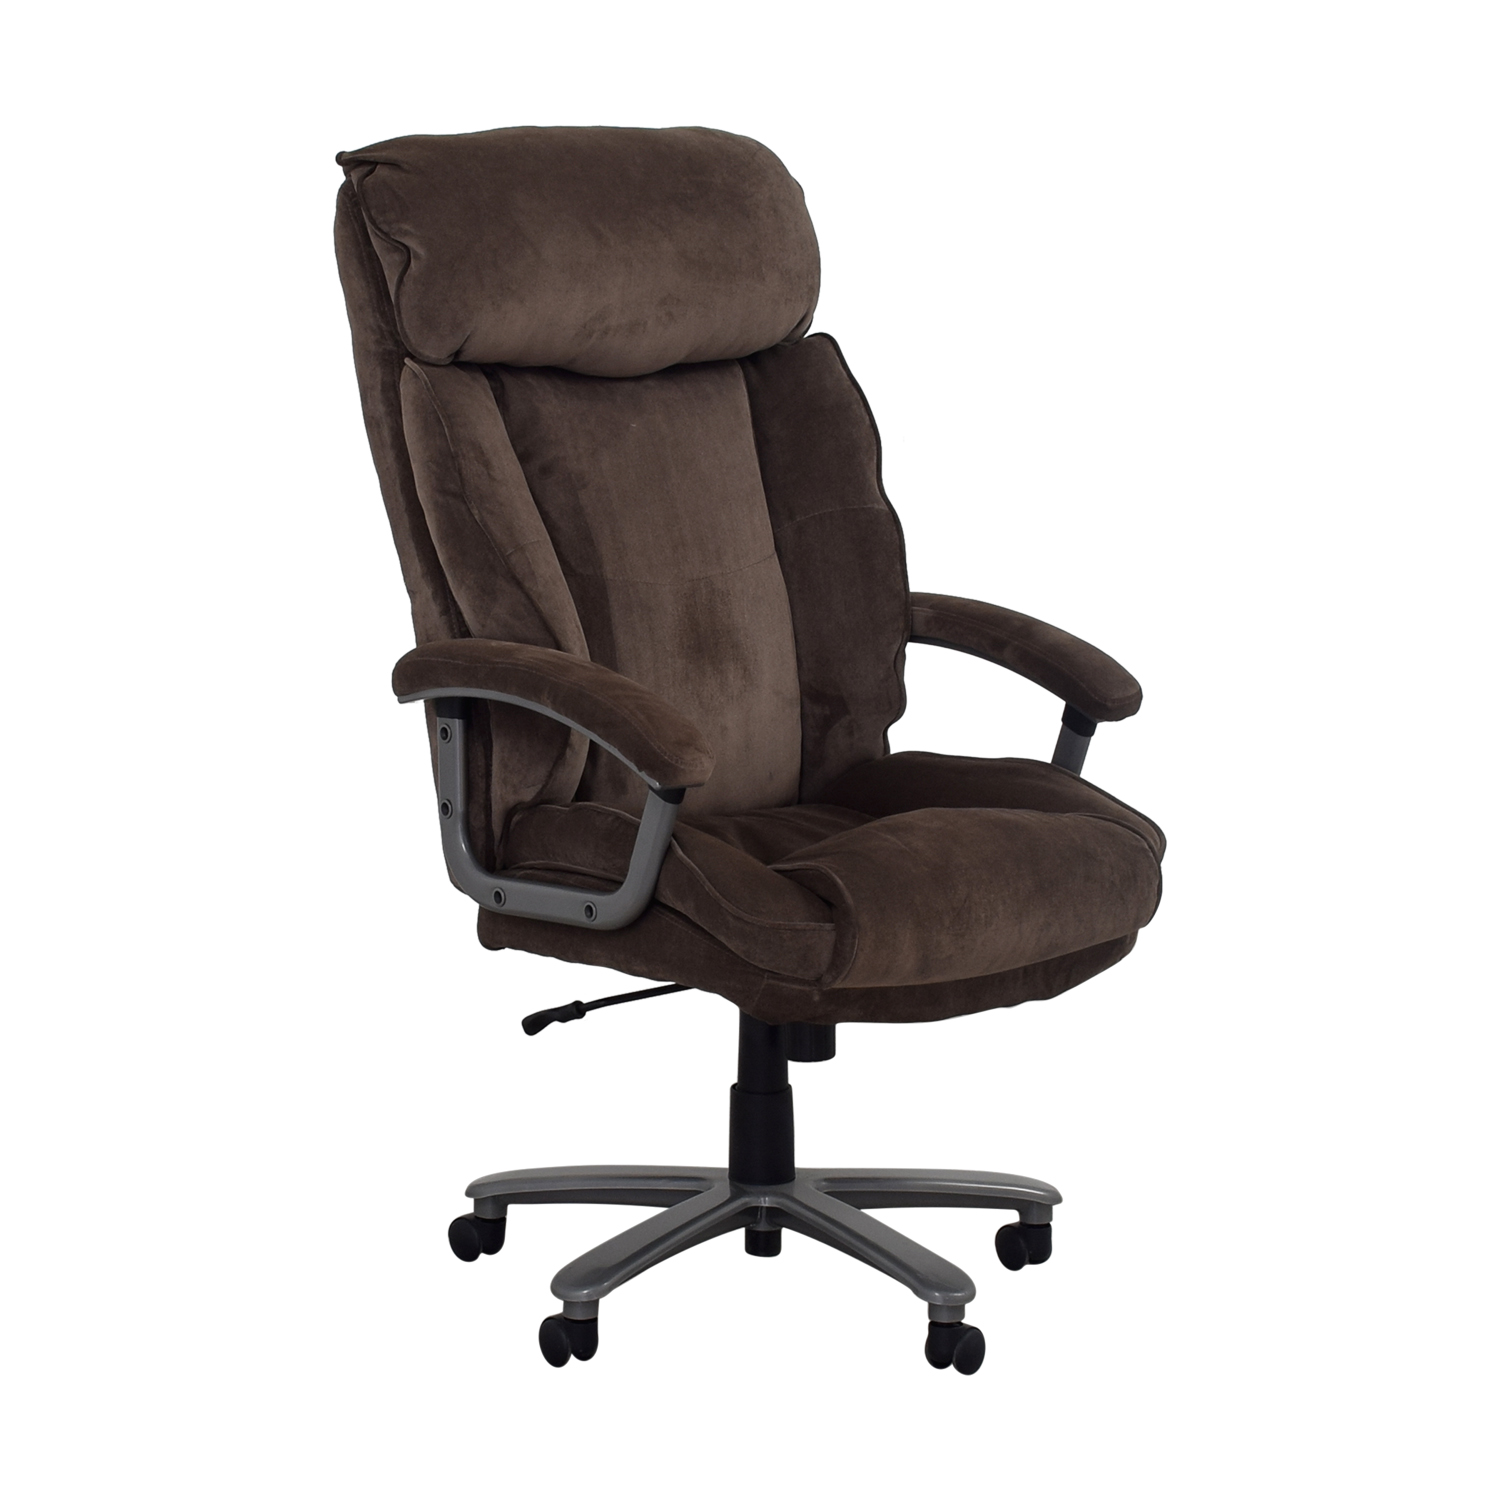 Office Depot Office Depot Grey Office Chair / Chairs